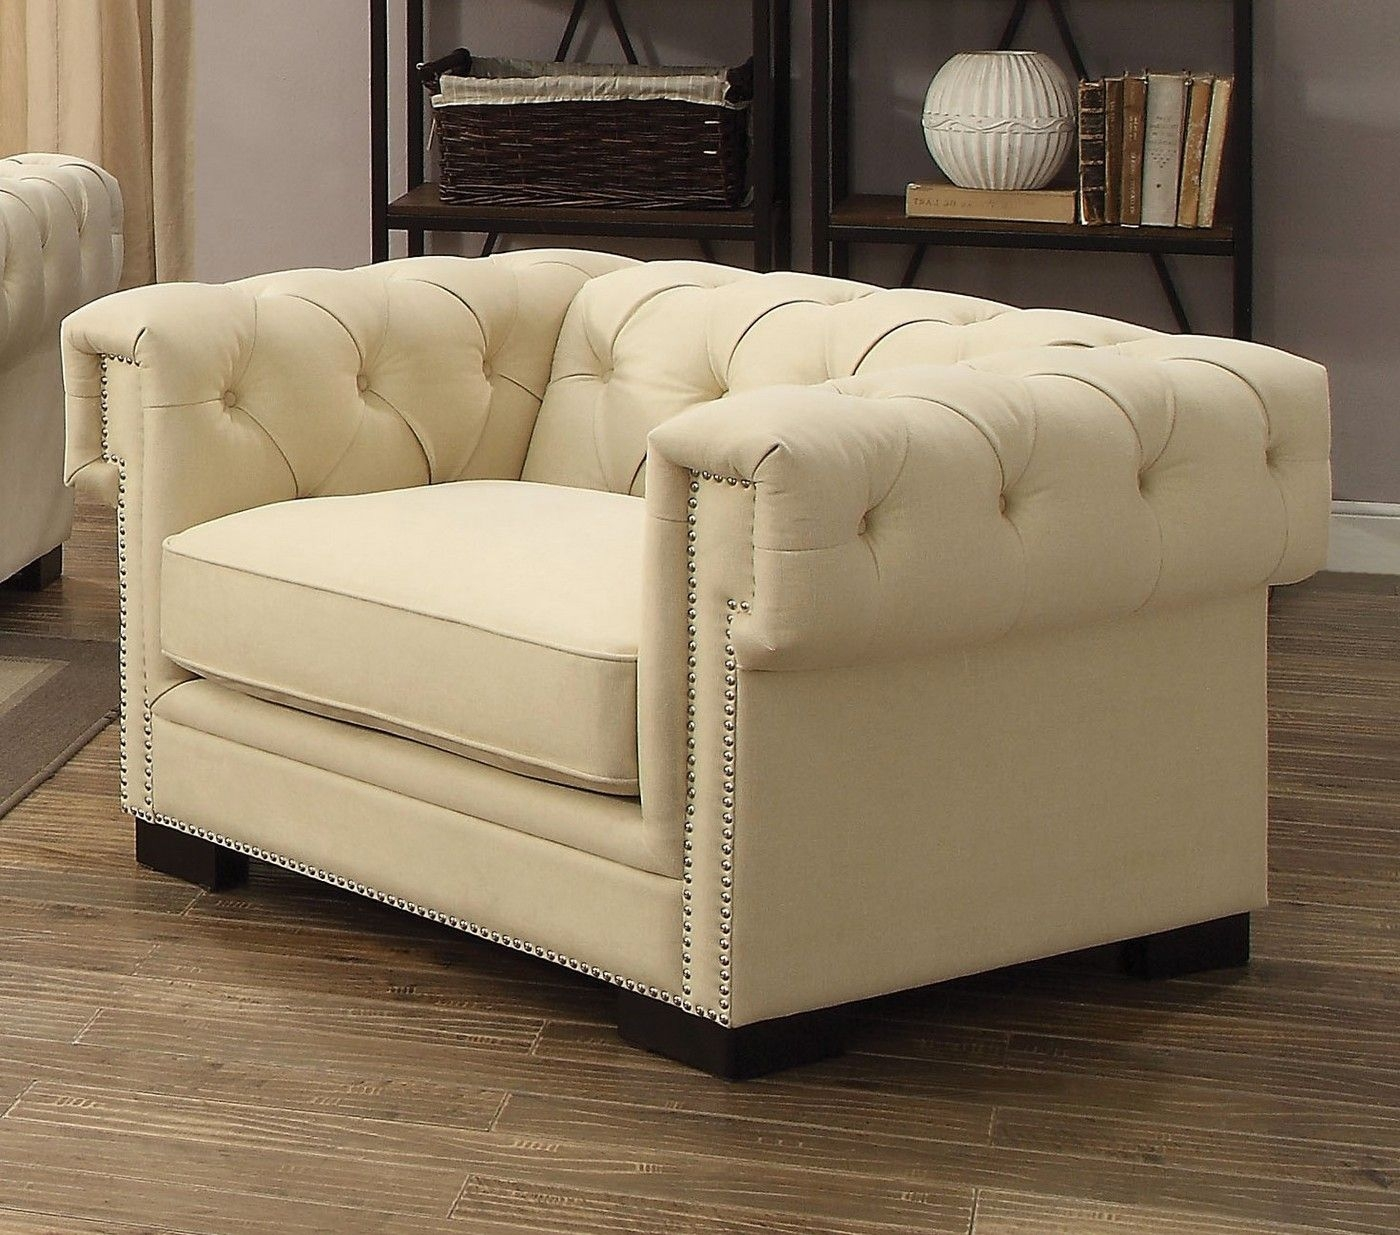 Creme Tufted Sofa Set In Sophisticated Cream Velvet With 8Way Suspension